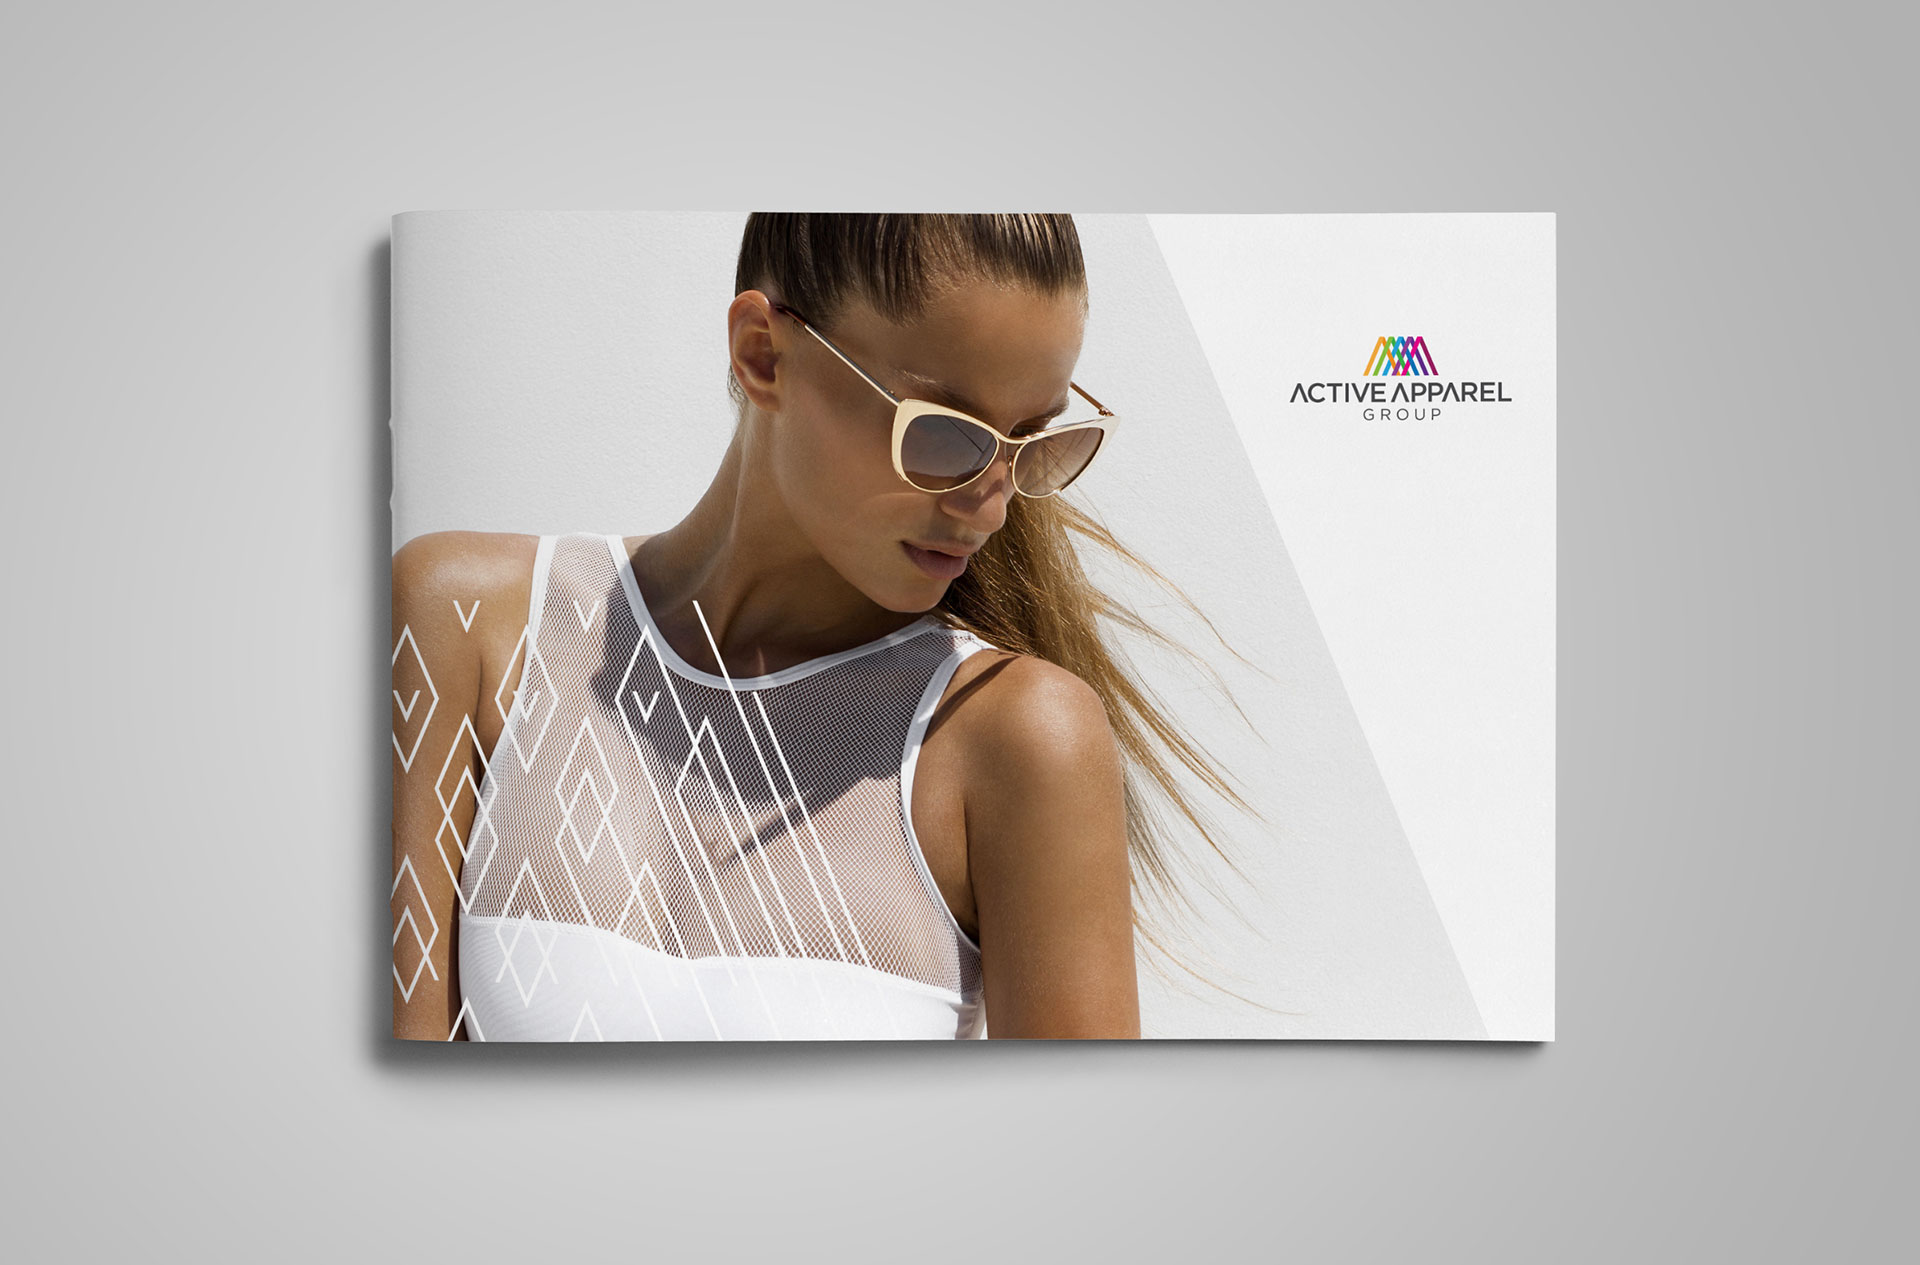 Active Apparel Group Company Profile Cover